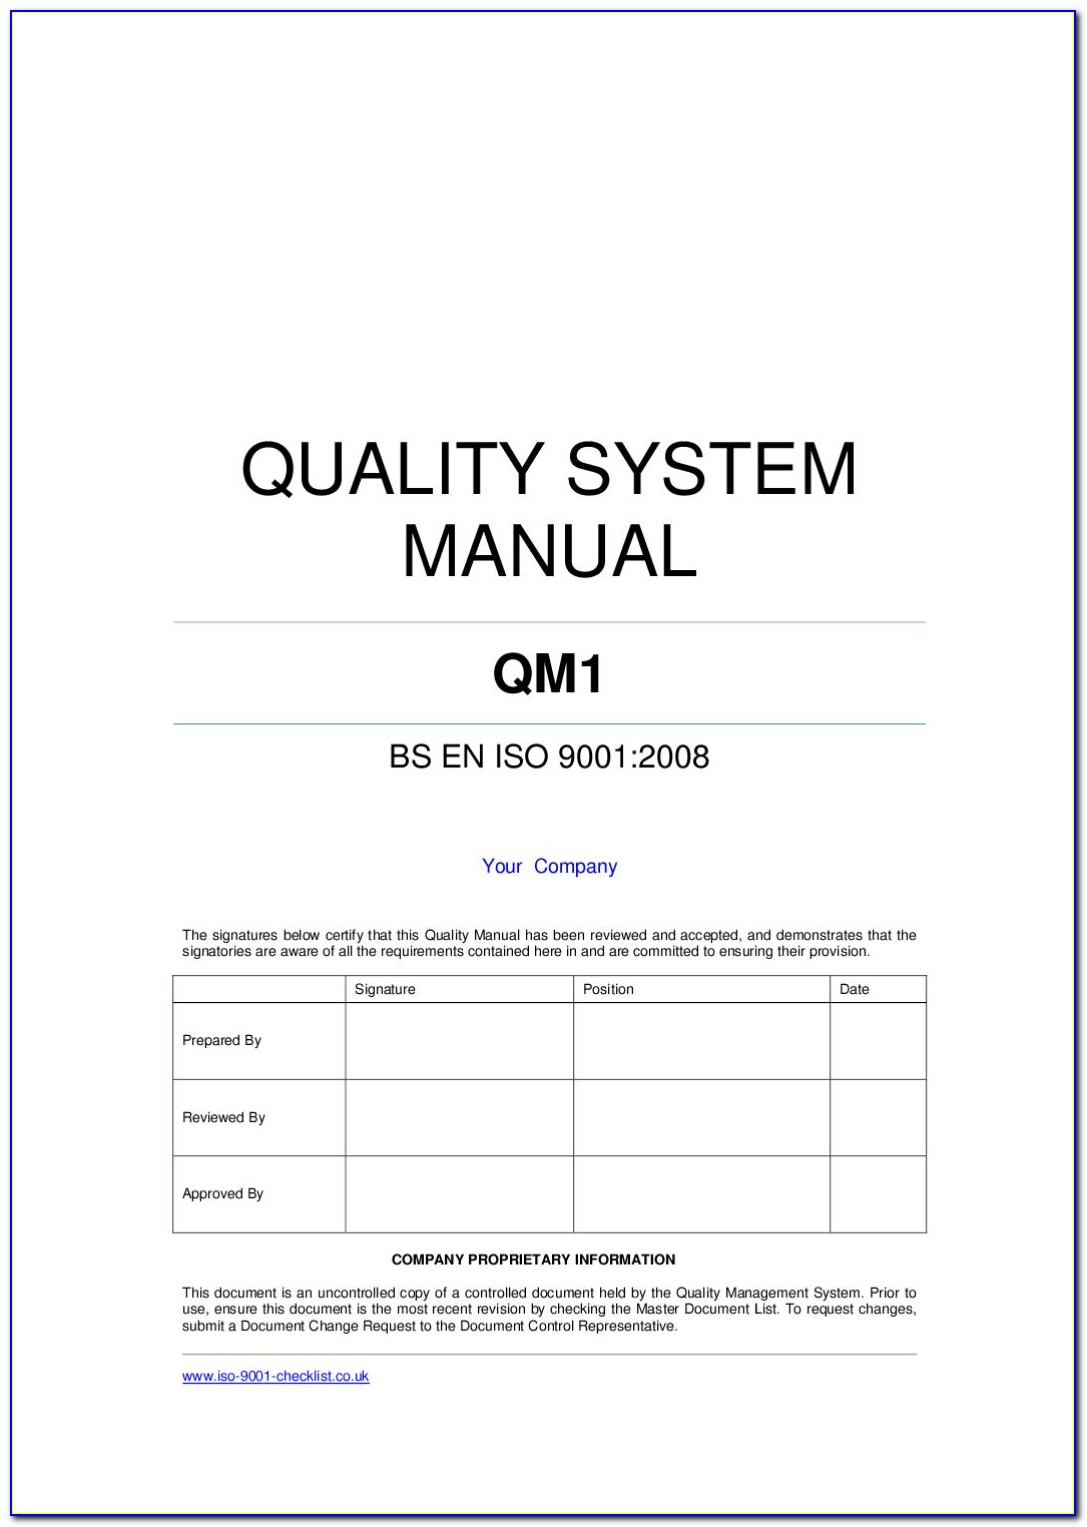 Iso 9001 Quality Manual Template Pdf